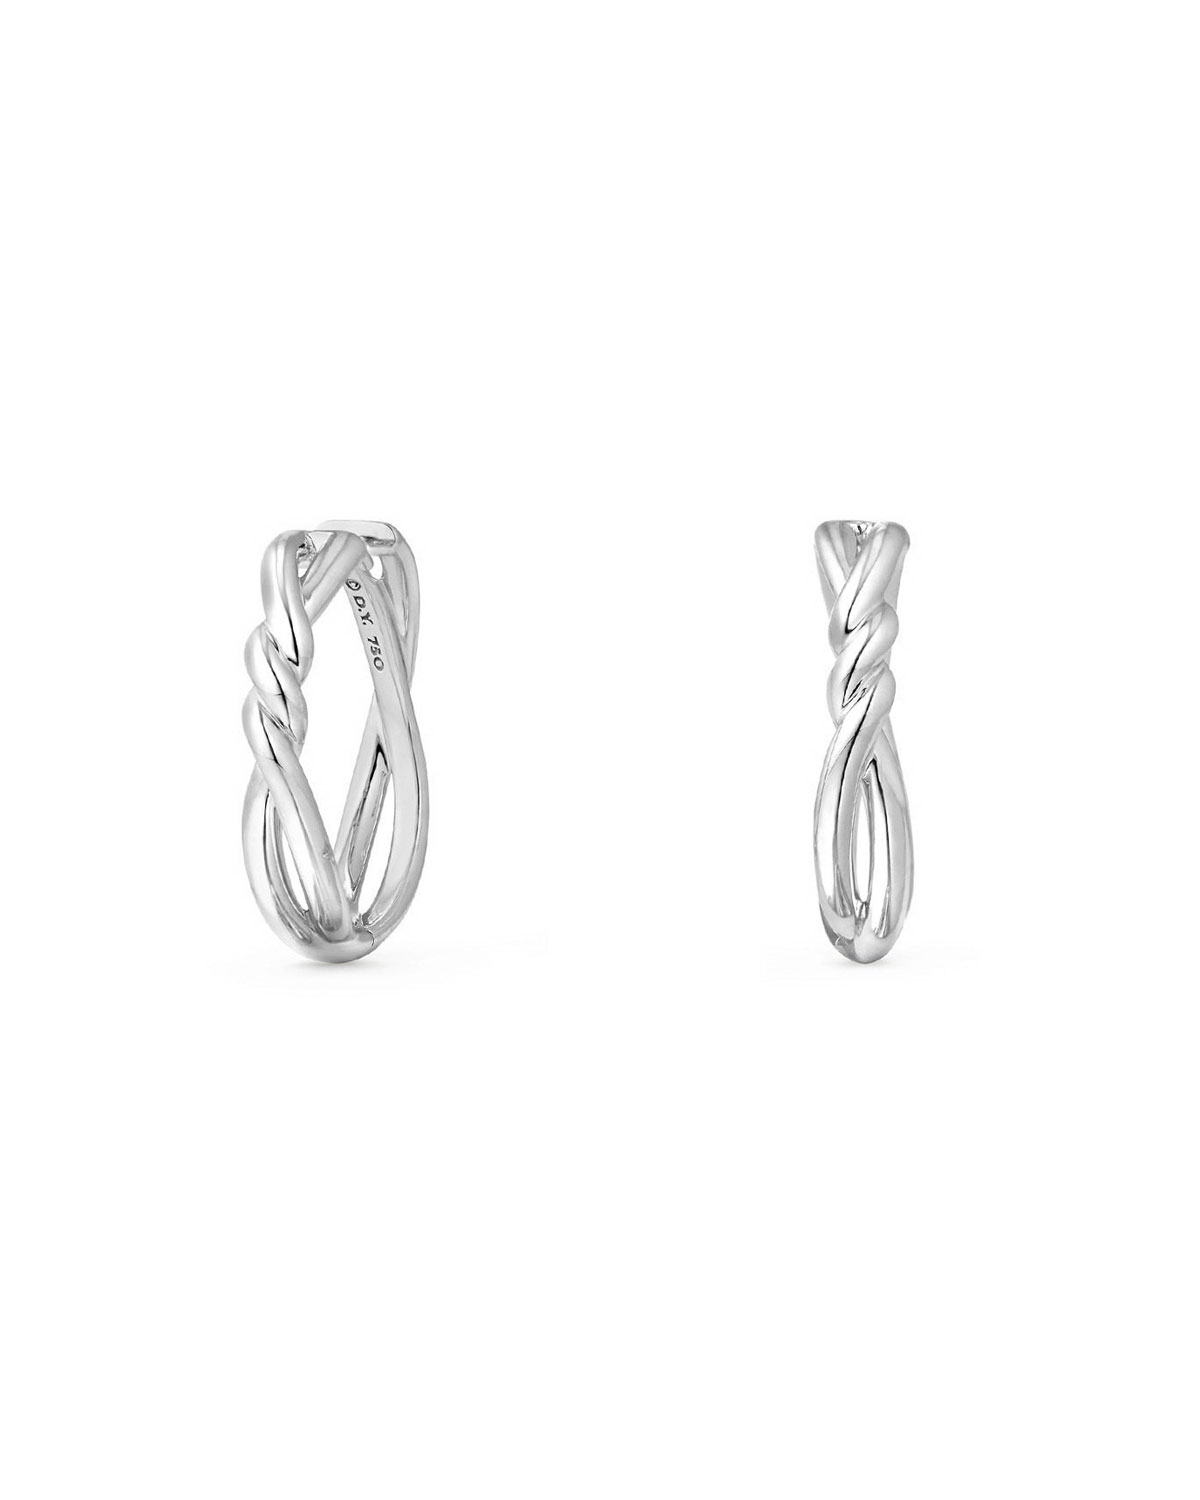 76eecdaf5be9c David Yurman 21mm Continuance Hoop Earrings in 18k White Gold ...